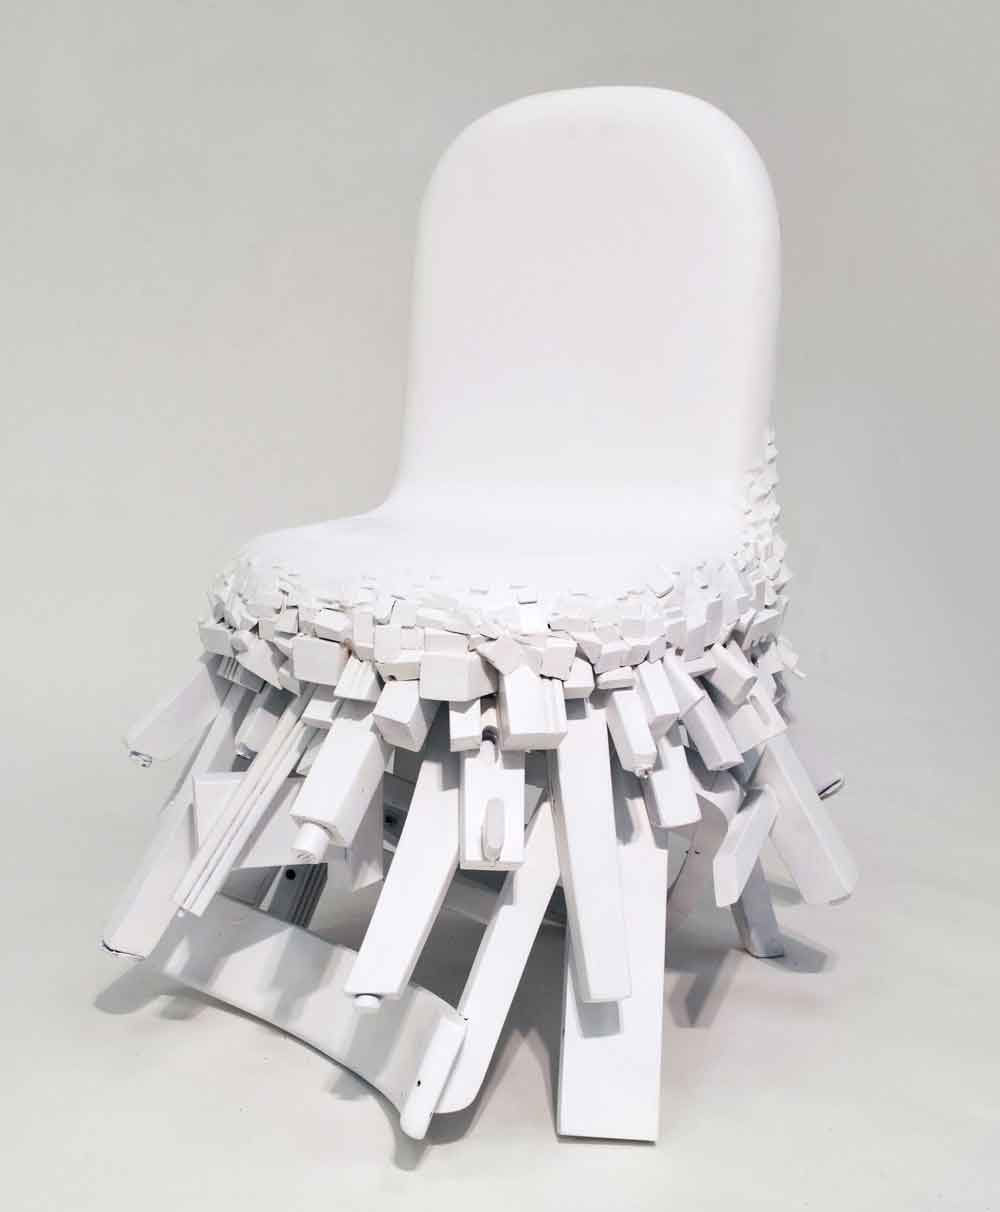 The Fused Chair The Curious Chairs of